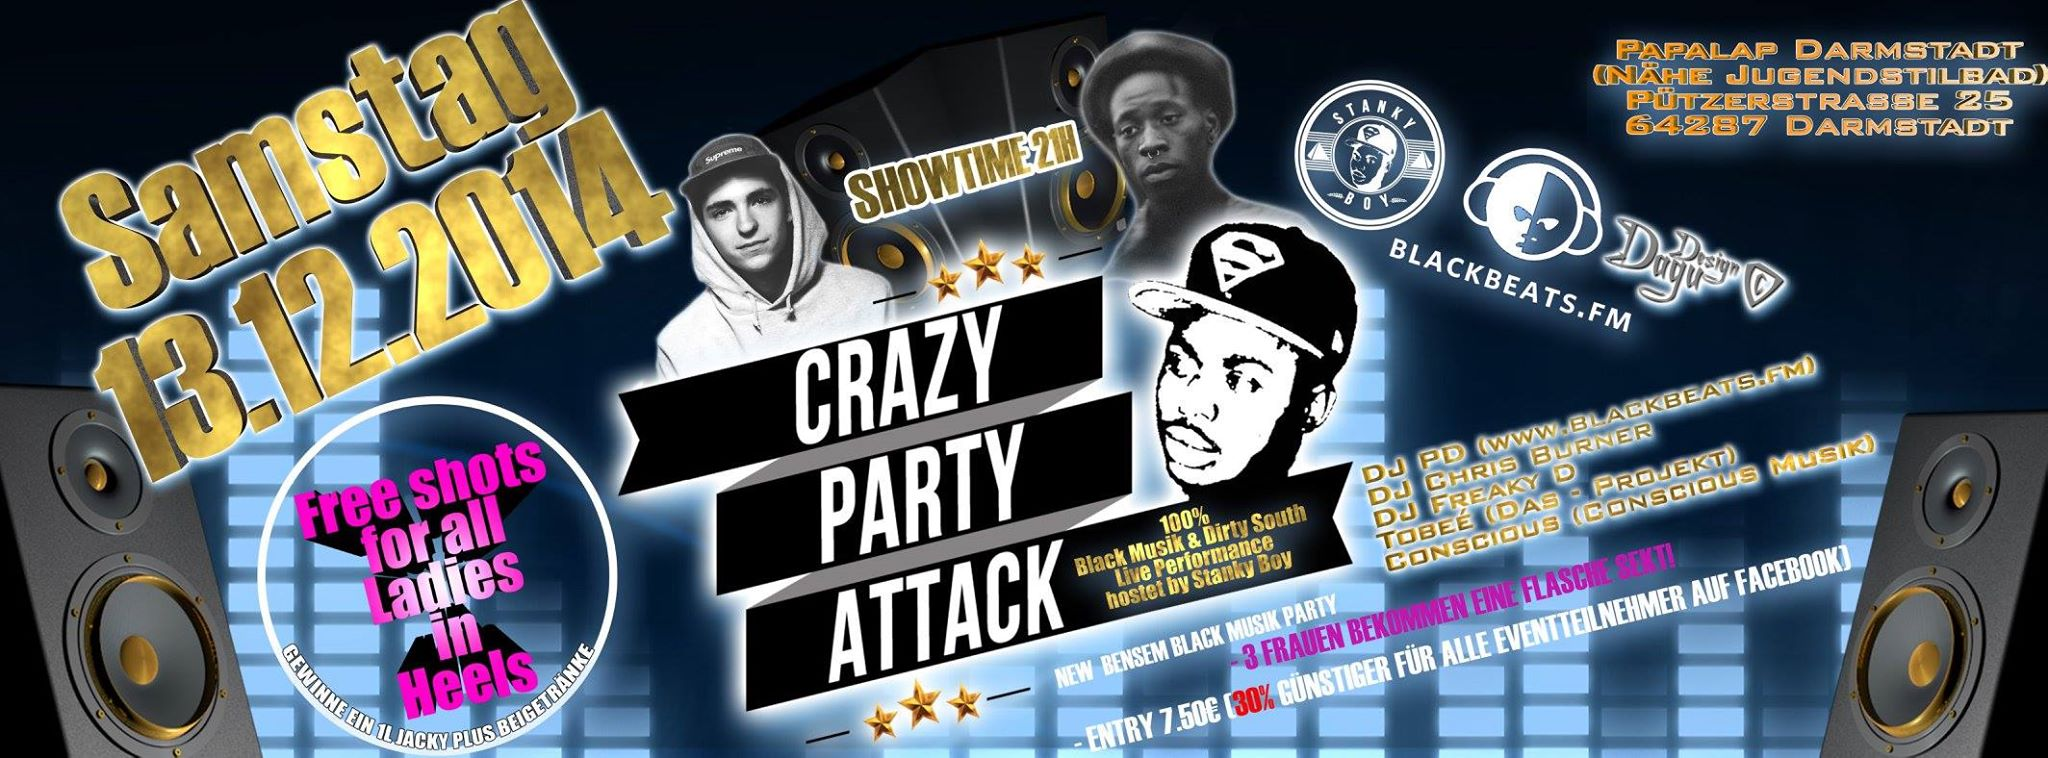 Crazy Party Attack